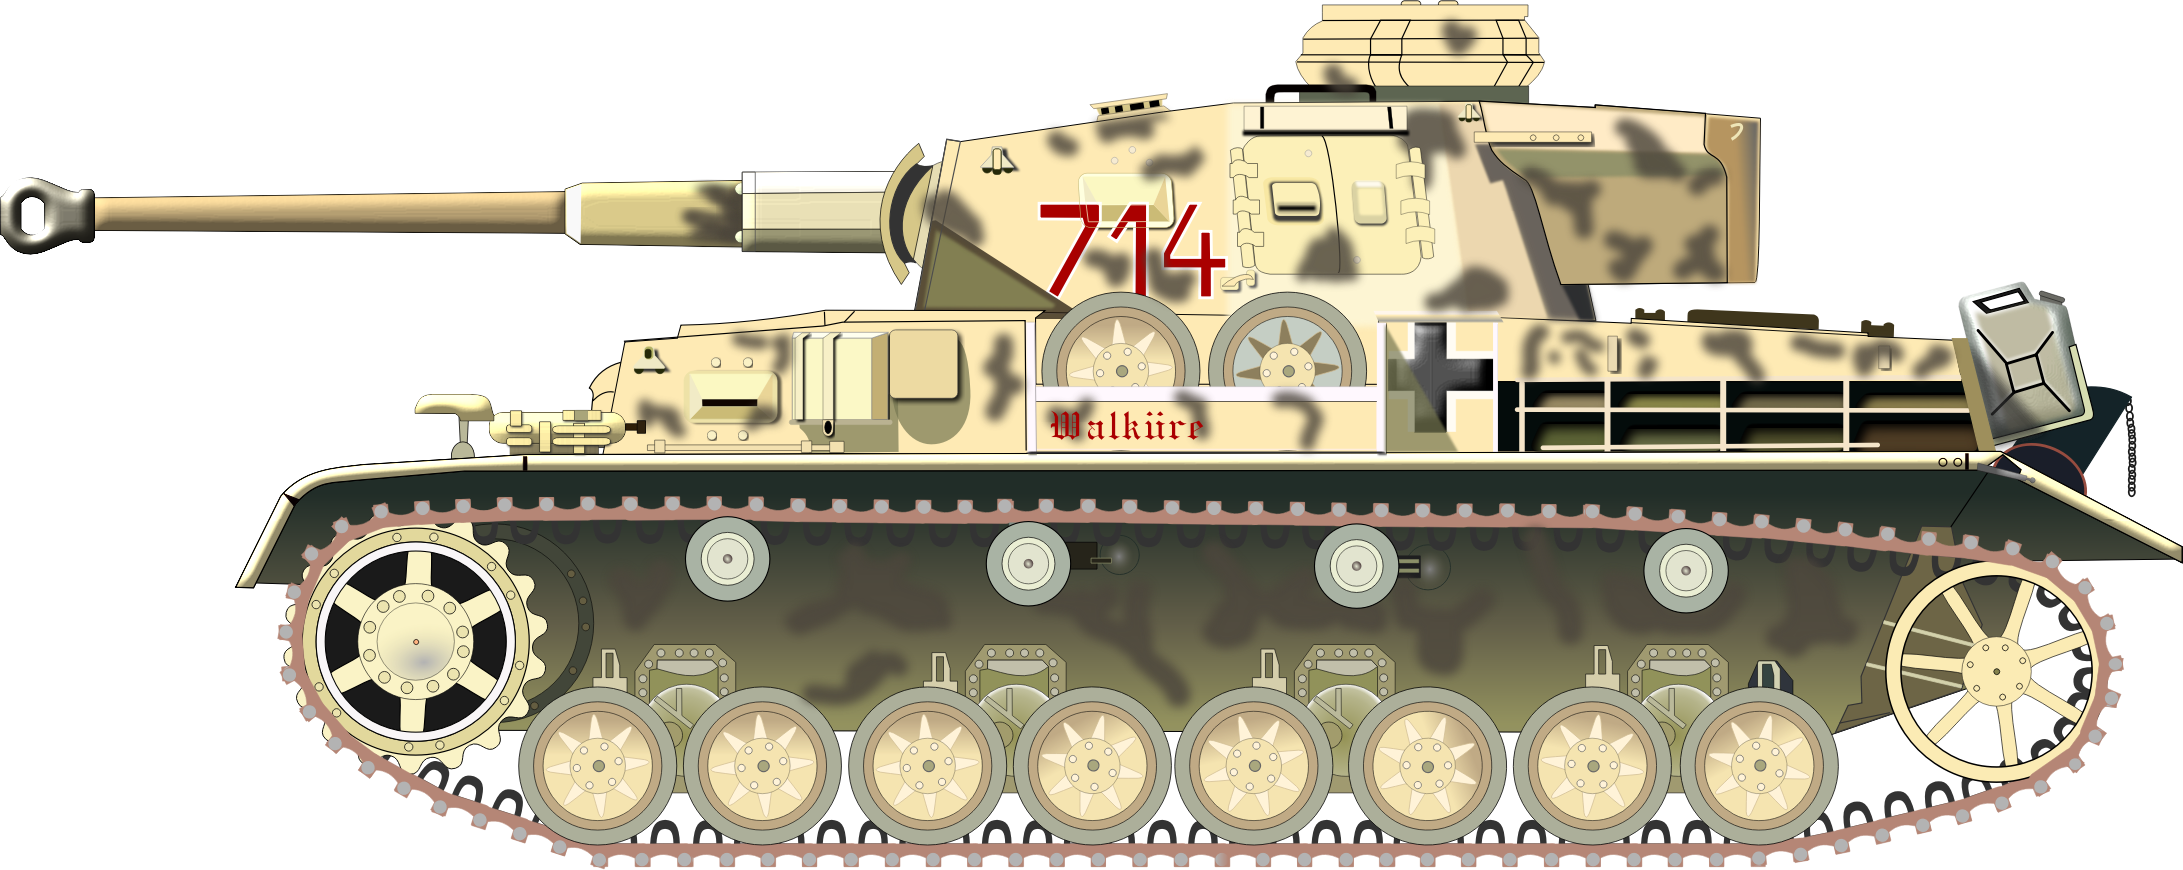 PANZER TANK by charner1963